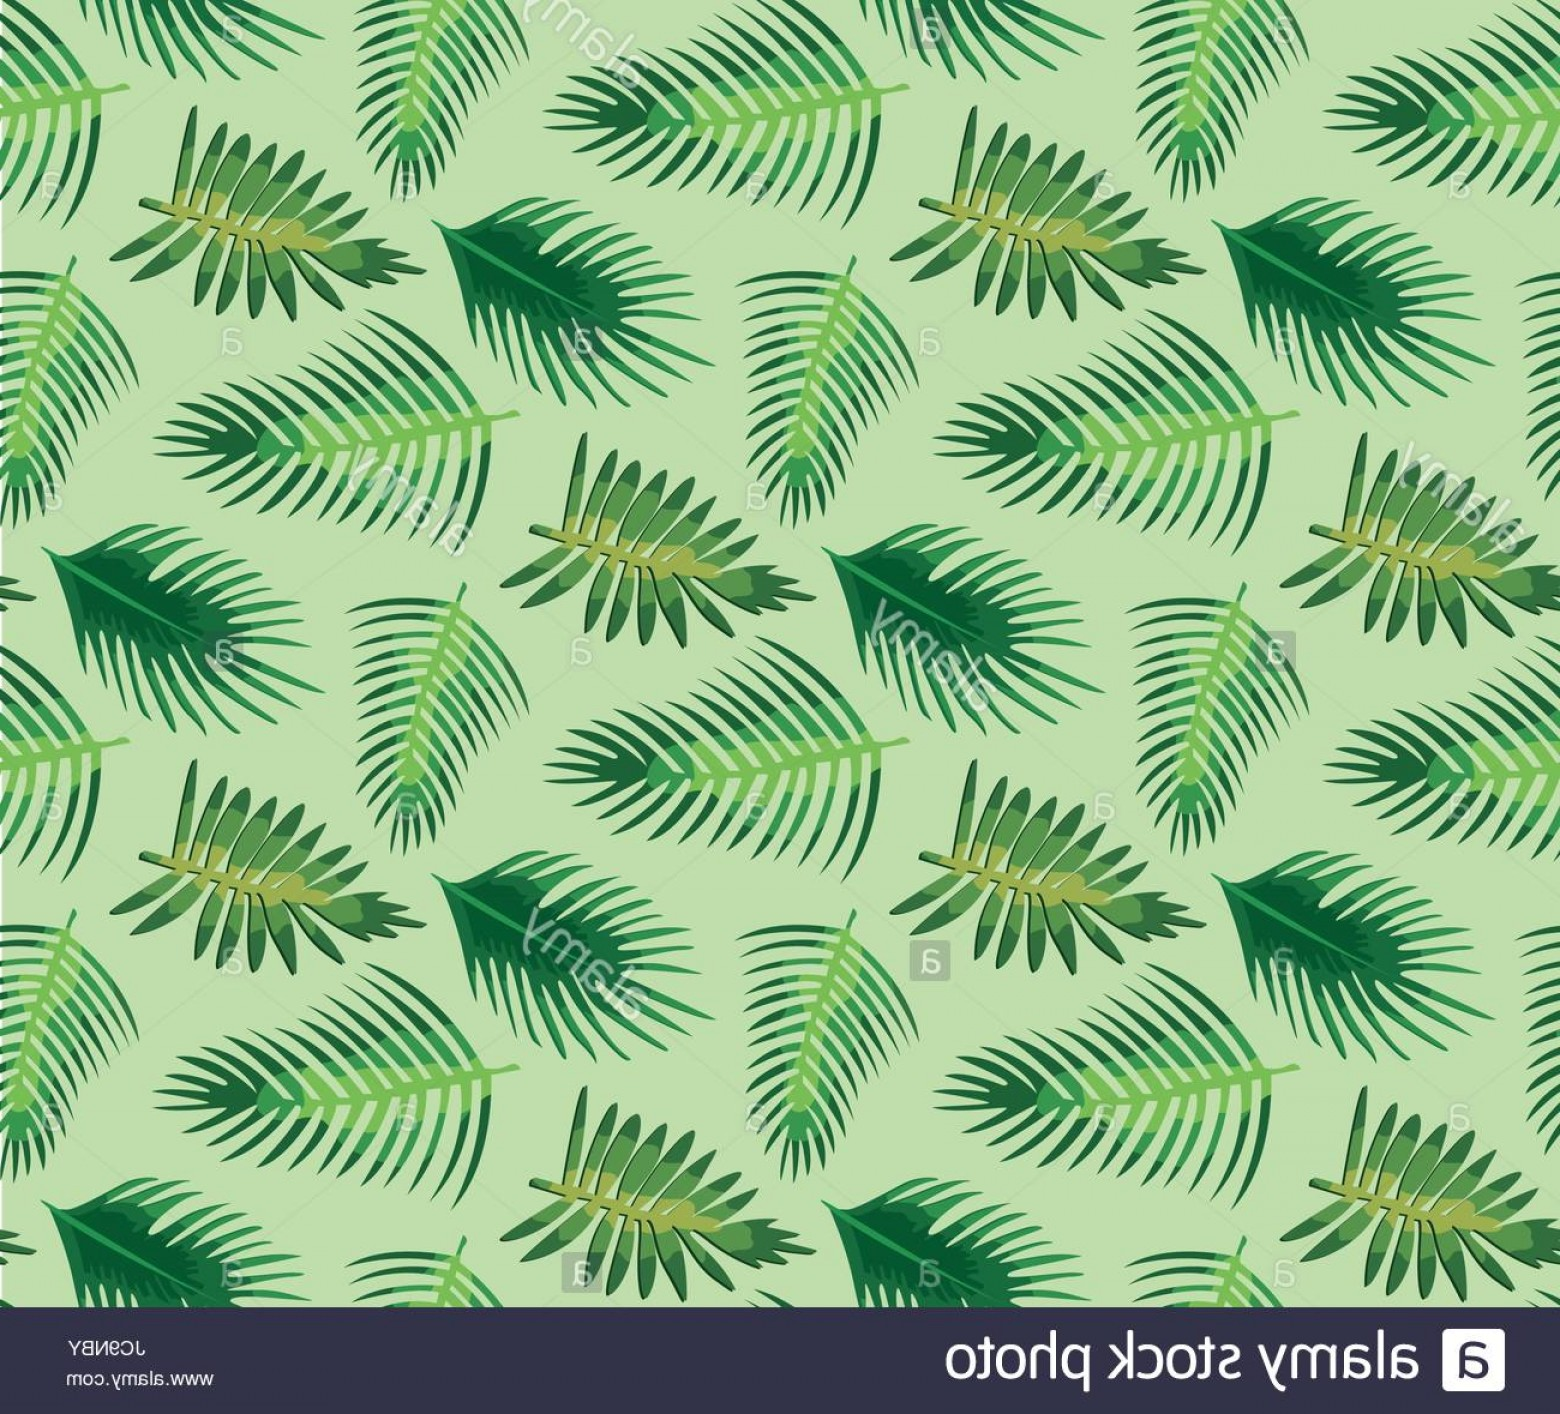 Hawaiian Pattern Vector: Stock Photo Palm Tree Different Set Leaf Leaves Seamless Pattern Background Texture